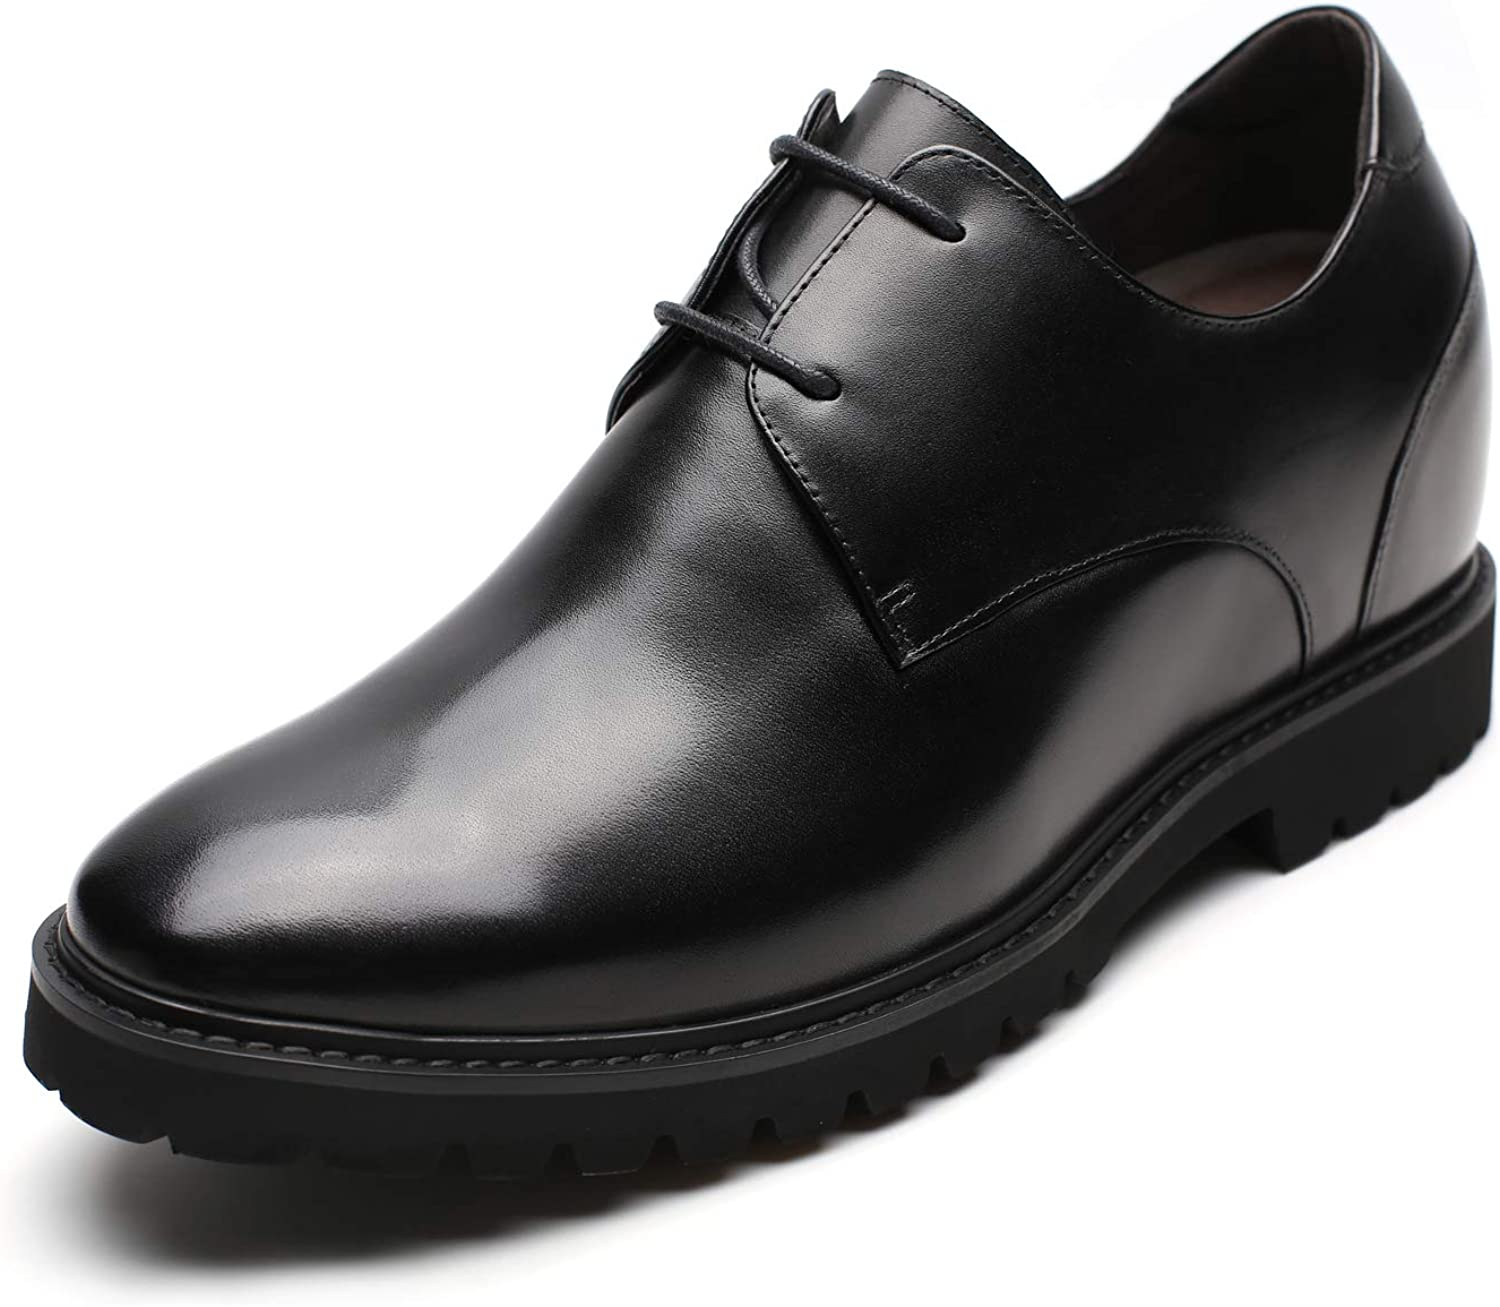 CHAMARIPA Men's Height Increasing Elevator Shoes 3.54 Inches Taller Leather Dress Shoes Invisible Elevated Oxfords H91X71D071D